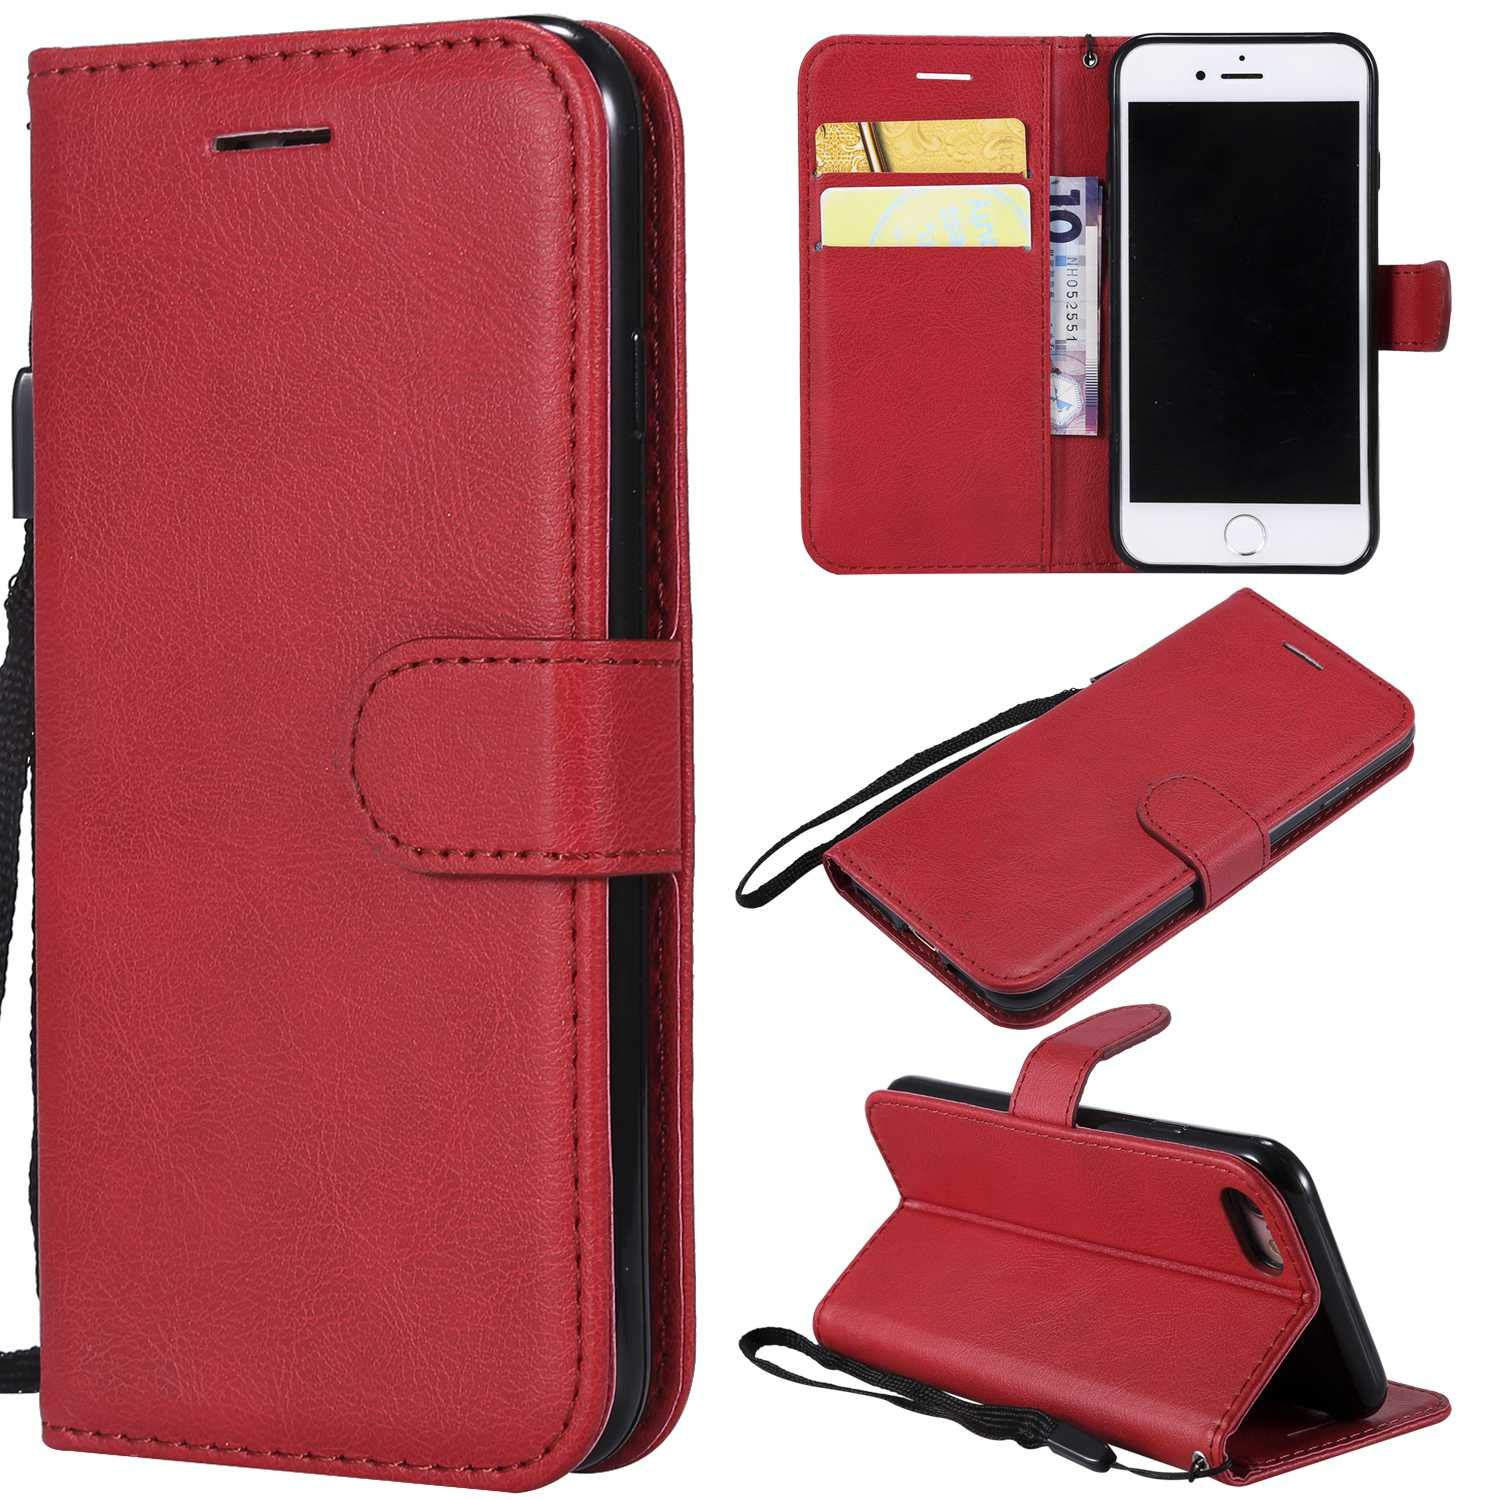 iPhone 7/8 Case, The Grafu Shockproof Leather Wallet Flip Case with [Card Slots] [Wrist Strap] Stand Function Cover for Apple iPhone 7 / iPhone 8, Red by The Grafu (Image #7)